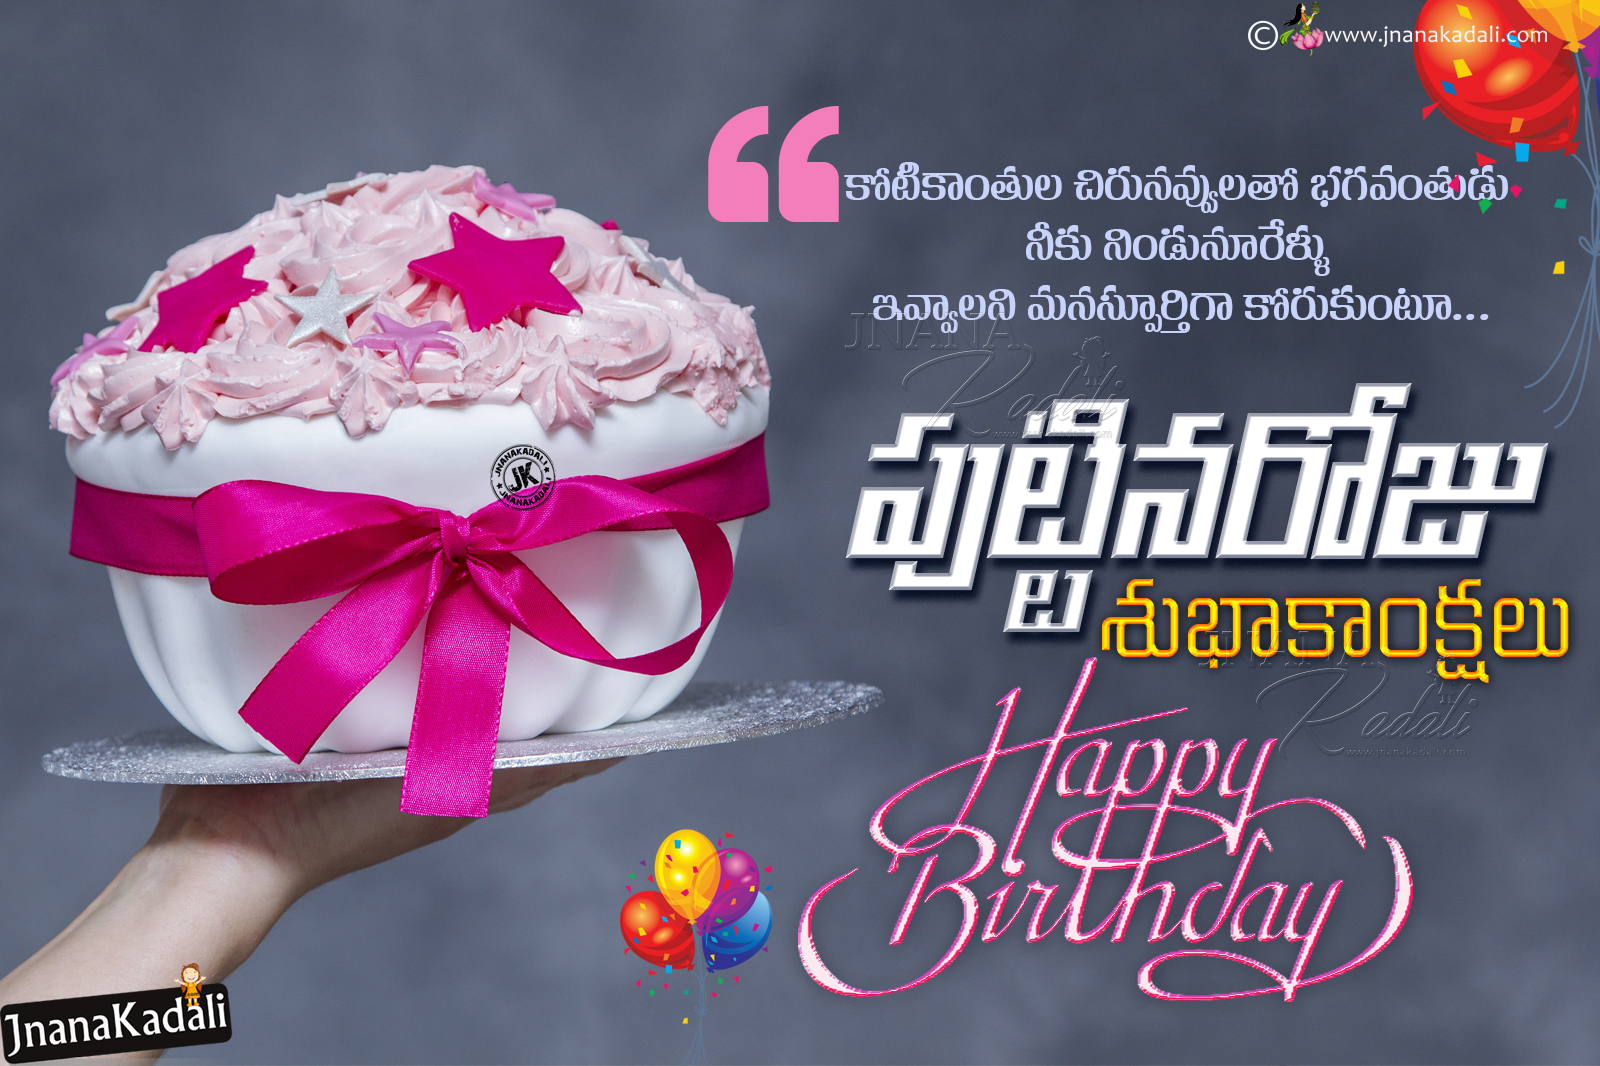 Happy birthday greetings images sms wishes quotes in telugu jnana happy birthday in telugugreetings images sms wishes quotes for every one who love to m4hsunfo